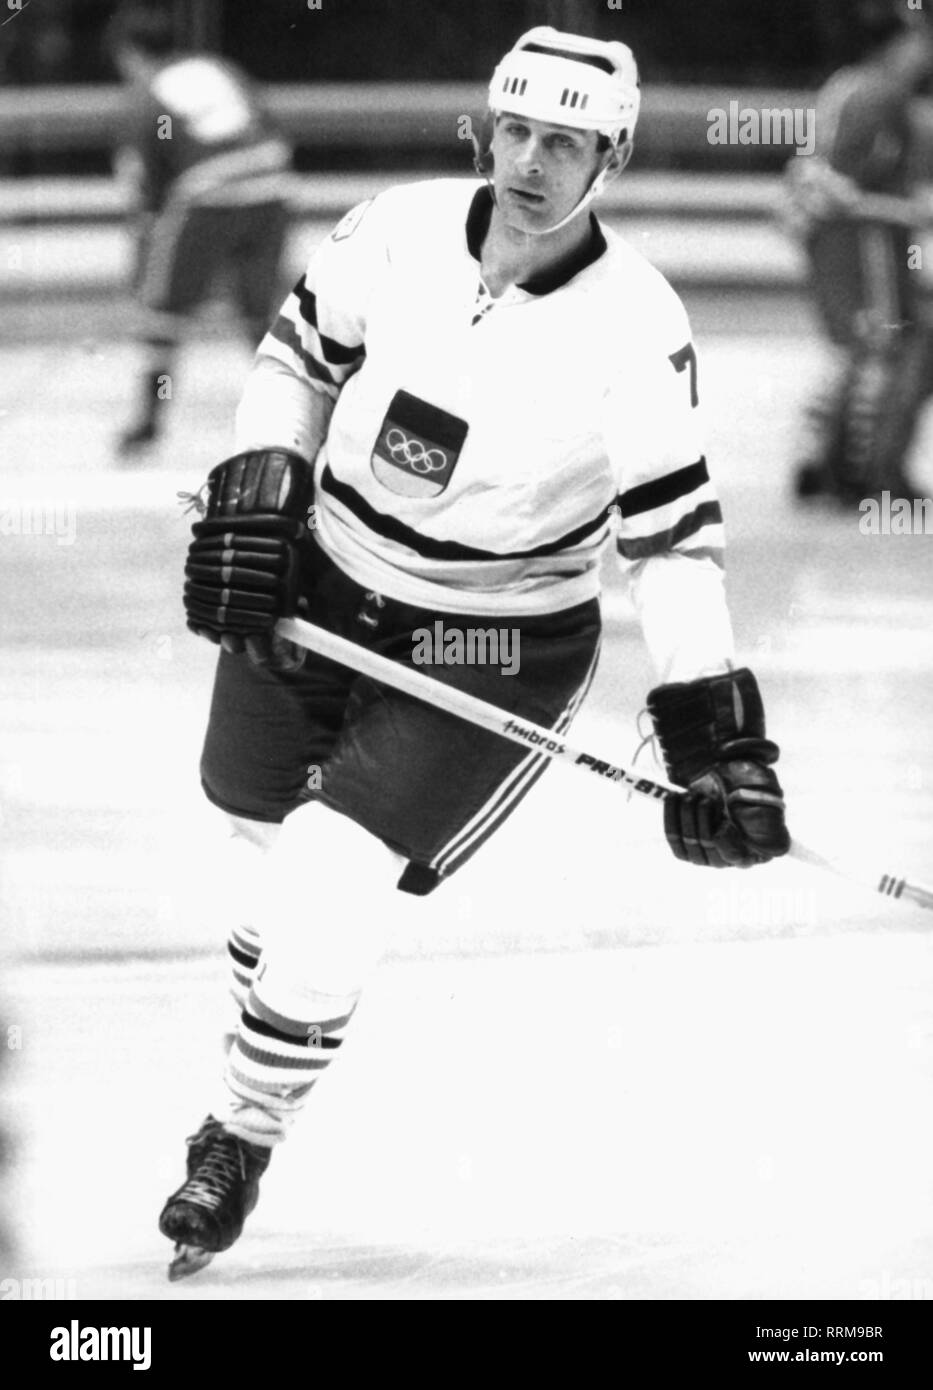 Koepf, Ernst (senior), * 10.2.1940, German ice-hockey player, striker of Augsburg EV, as international at the world championship in Bucuresti, full length, 25.2.1970, Additional-Rights-Clearance-Info-Not-Available - Stock Image